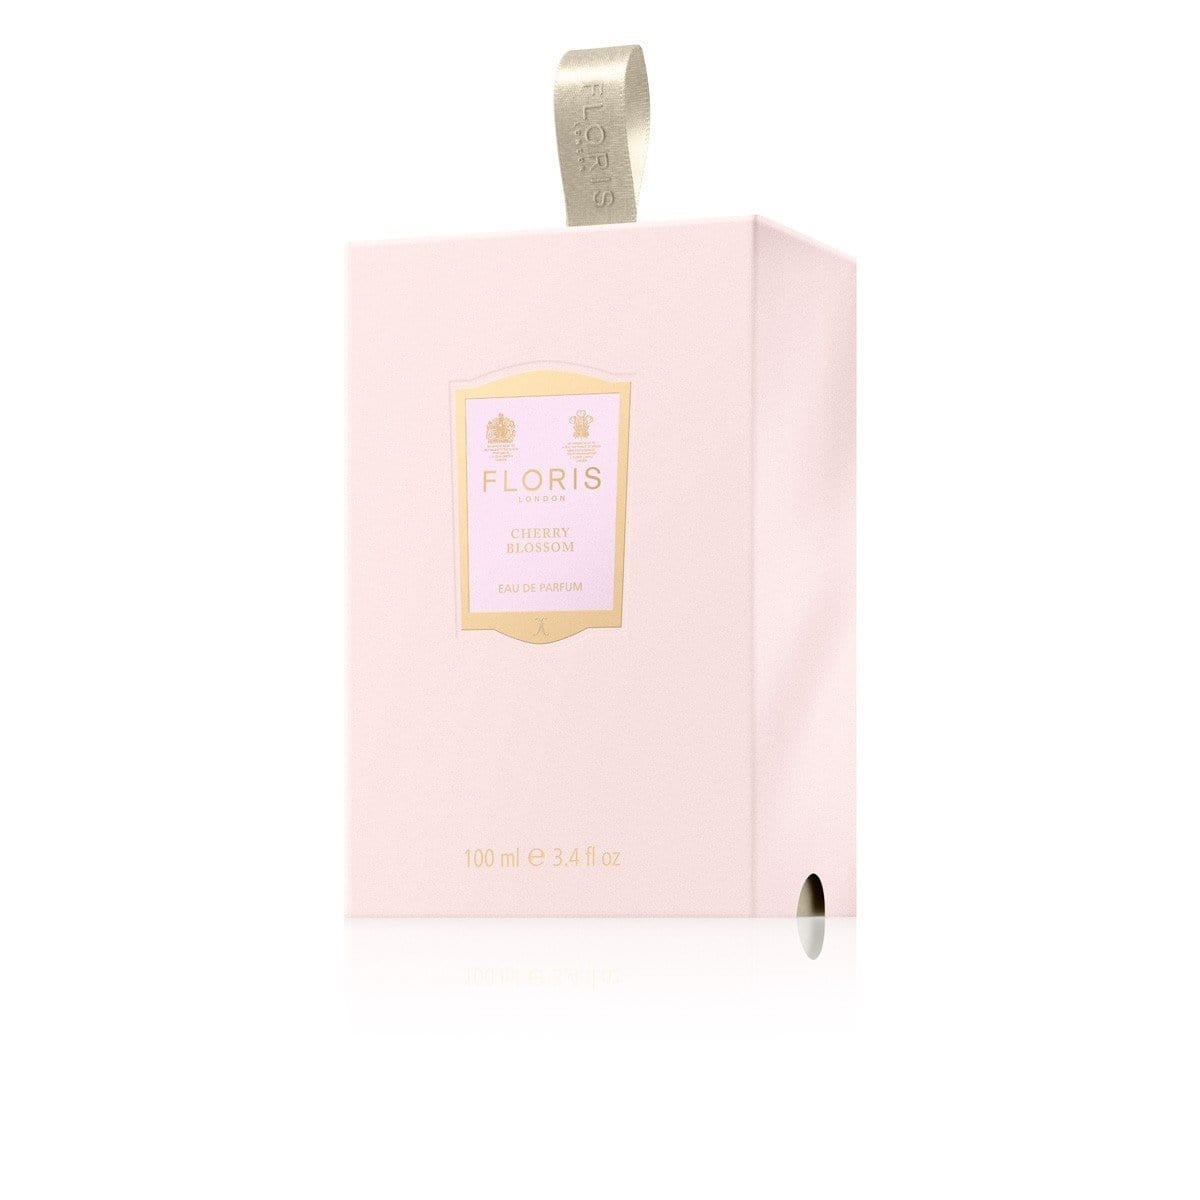 Floris London Perfume 100ml / Eau de Parfum Cherry Blossom